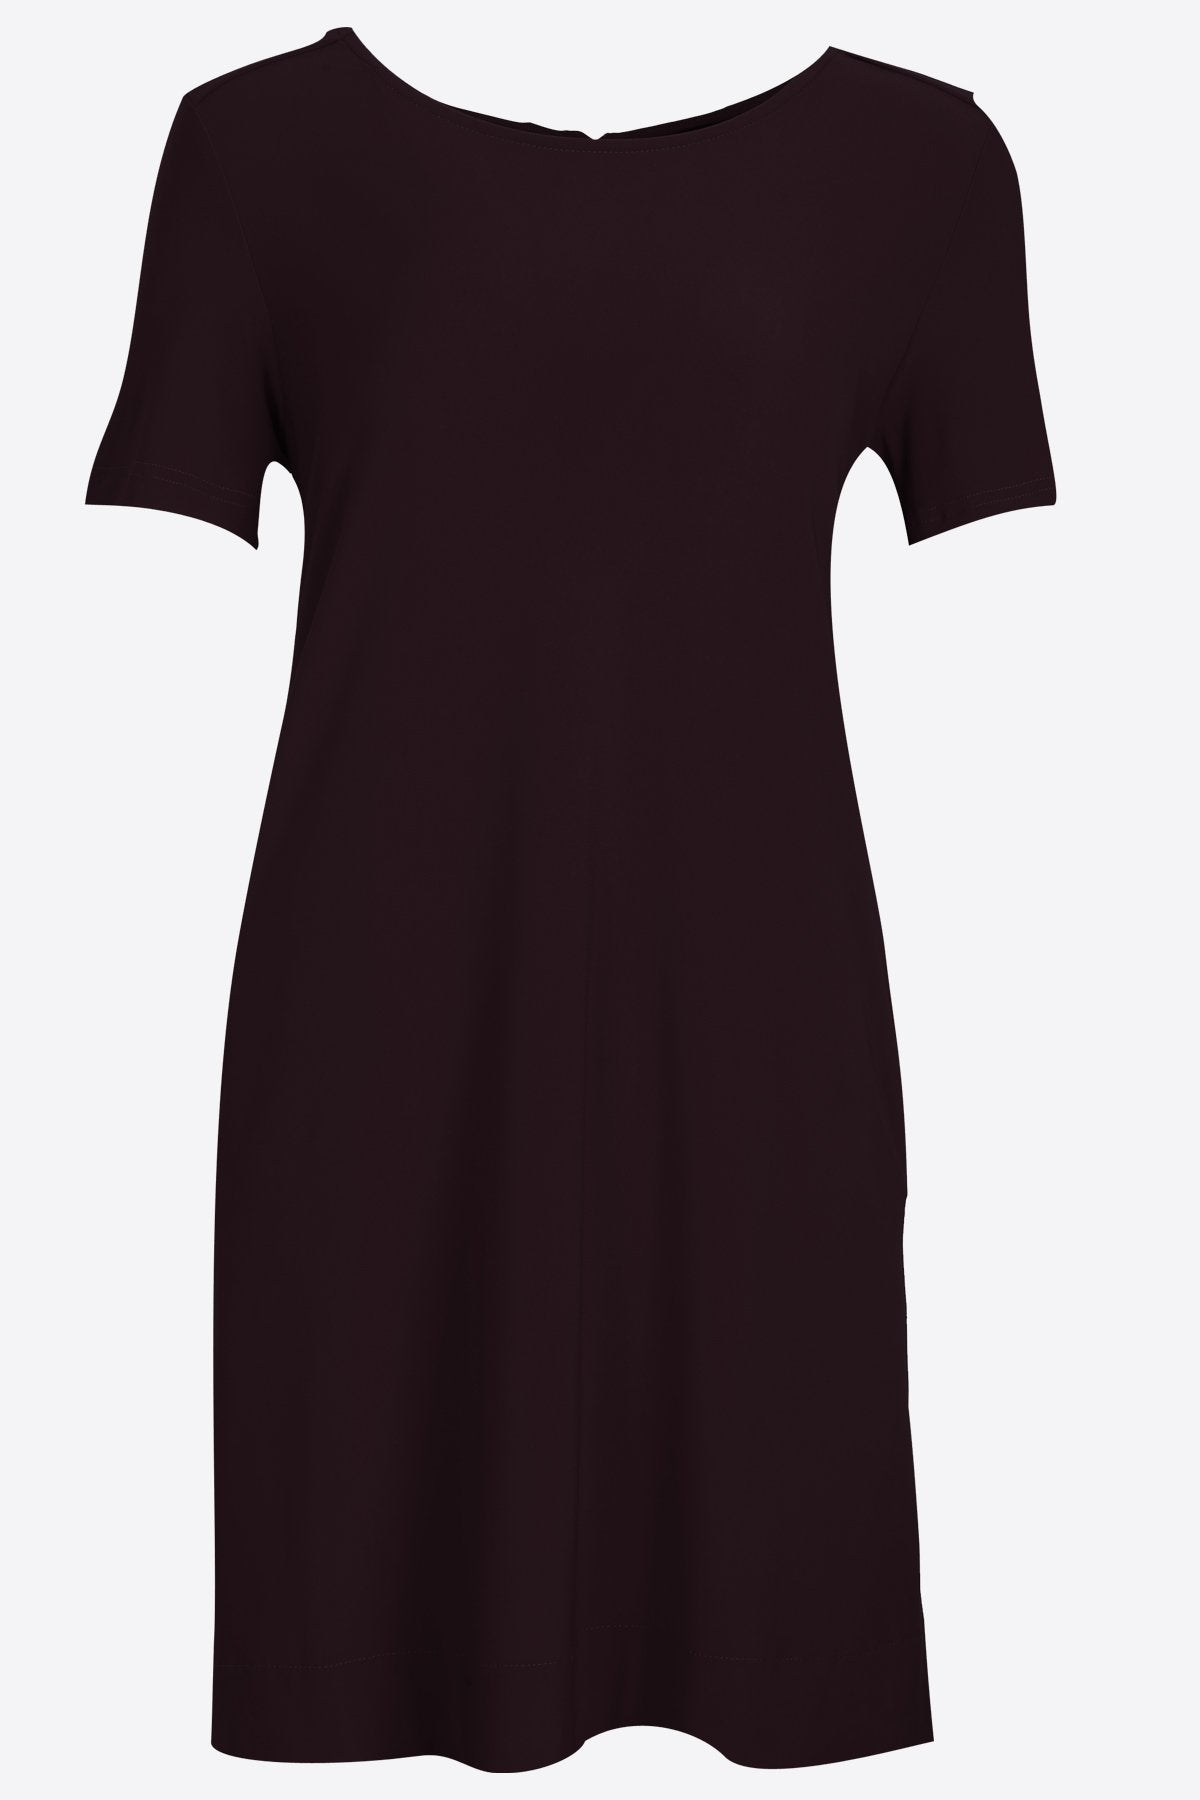 Short Sleeve A-Line Shift Dress With Pocket black